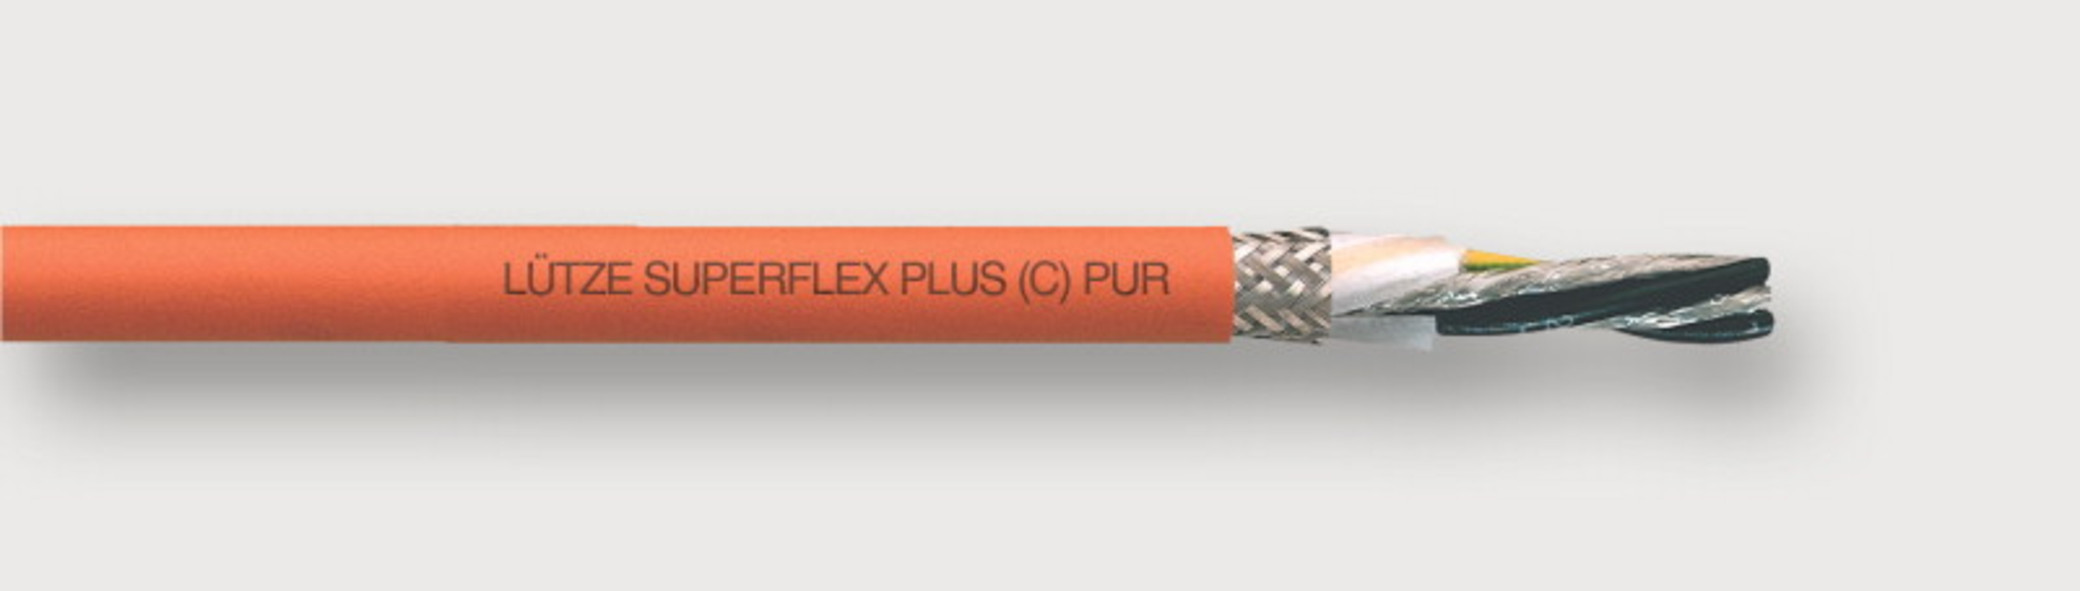 111426 - LÜTZE SUPERFLEX® PLUS M (C) PUR SERVO 0.6/1 kV High Flexing Motor Cable for Siemens and other systems For highest requirements